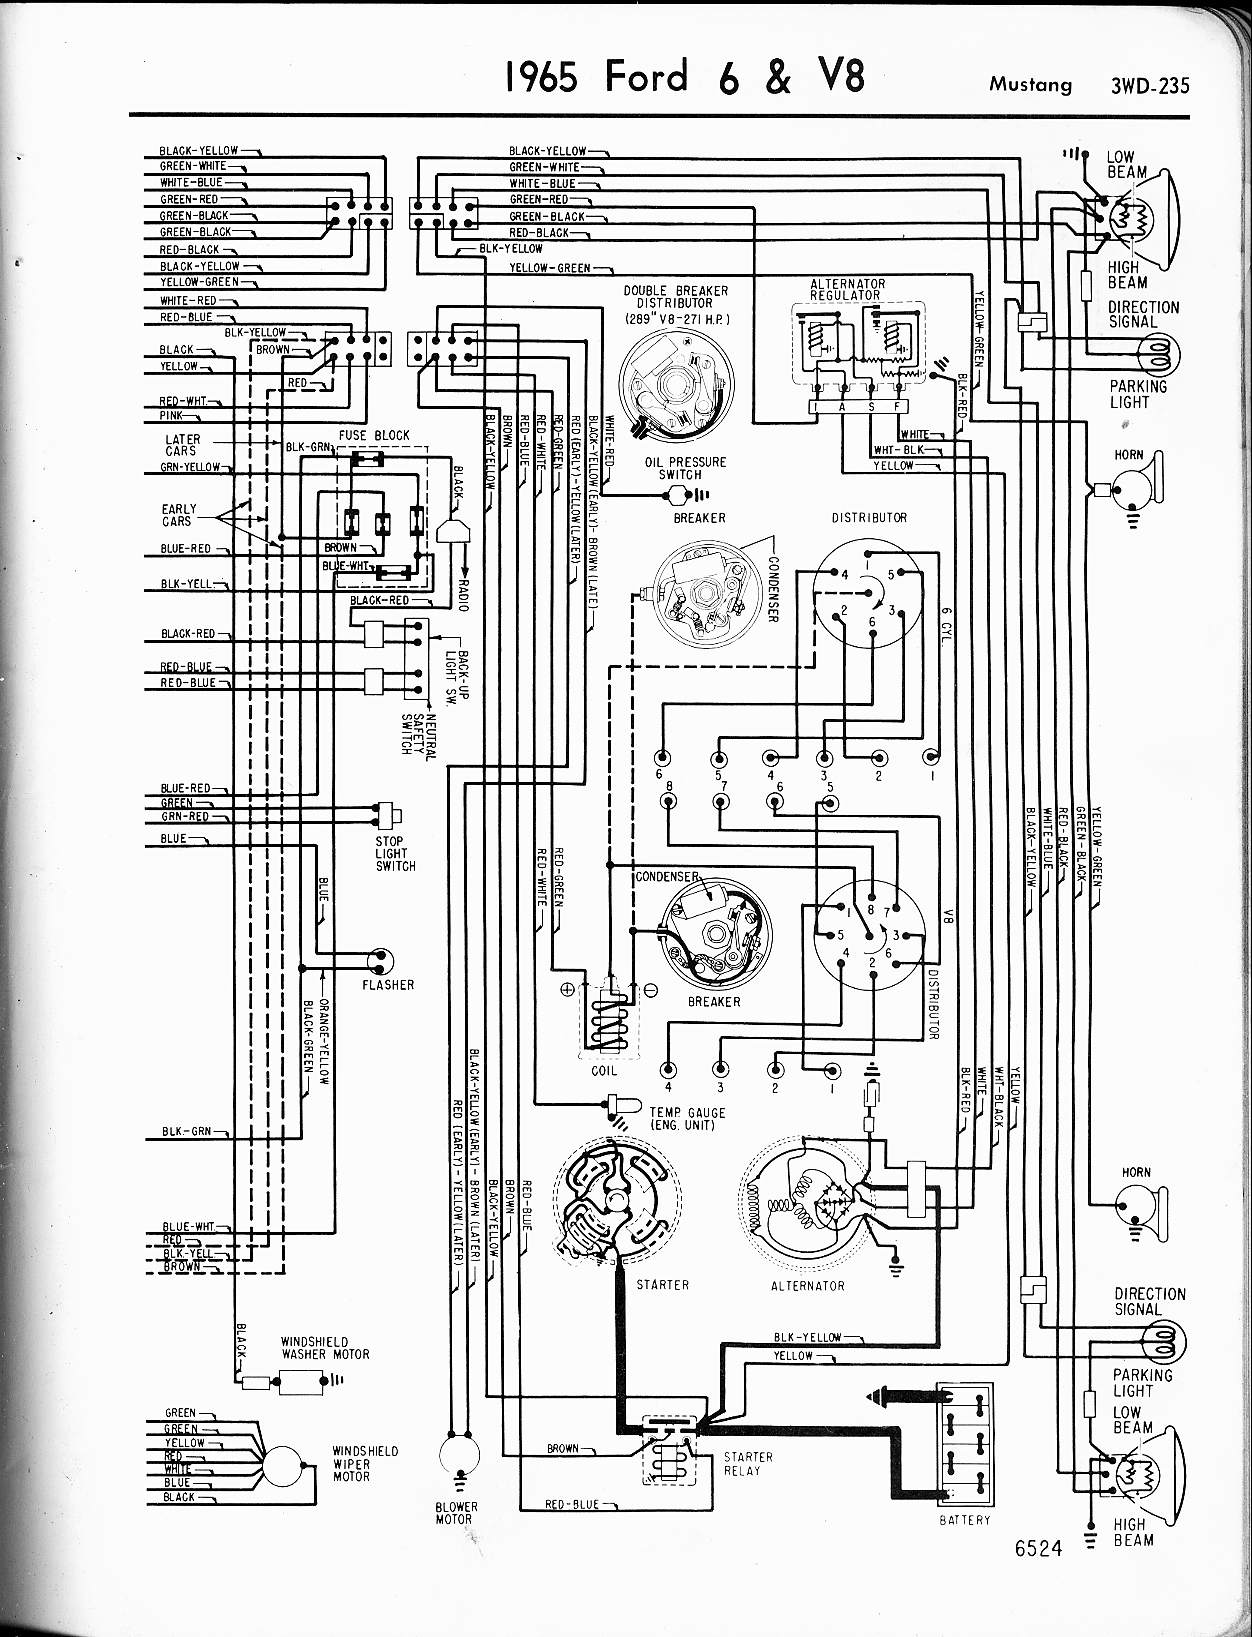 MWire5765 235 57 65 ford wiring diagrams 1970 ford mustang wiring diagram at mifinder.co